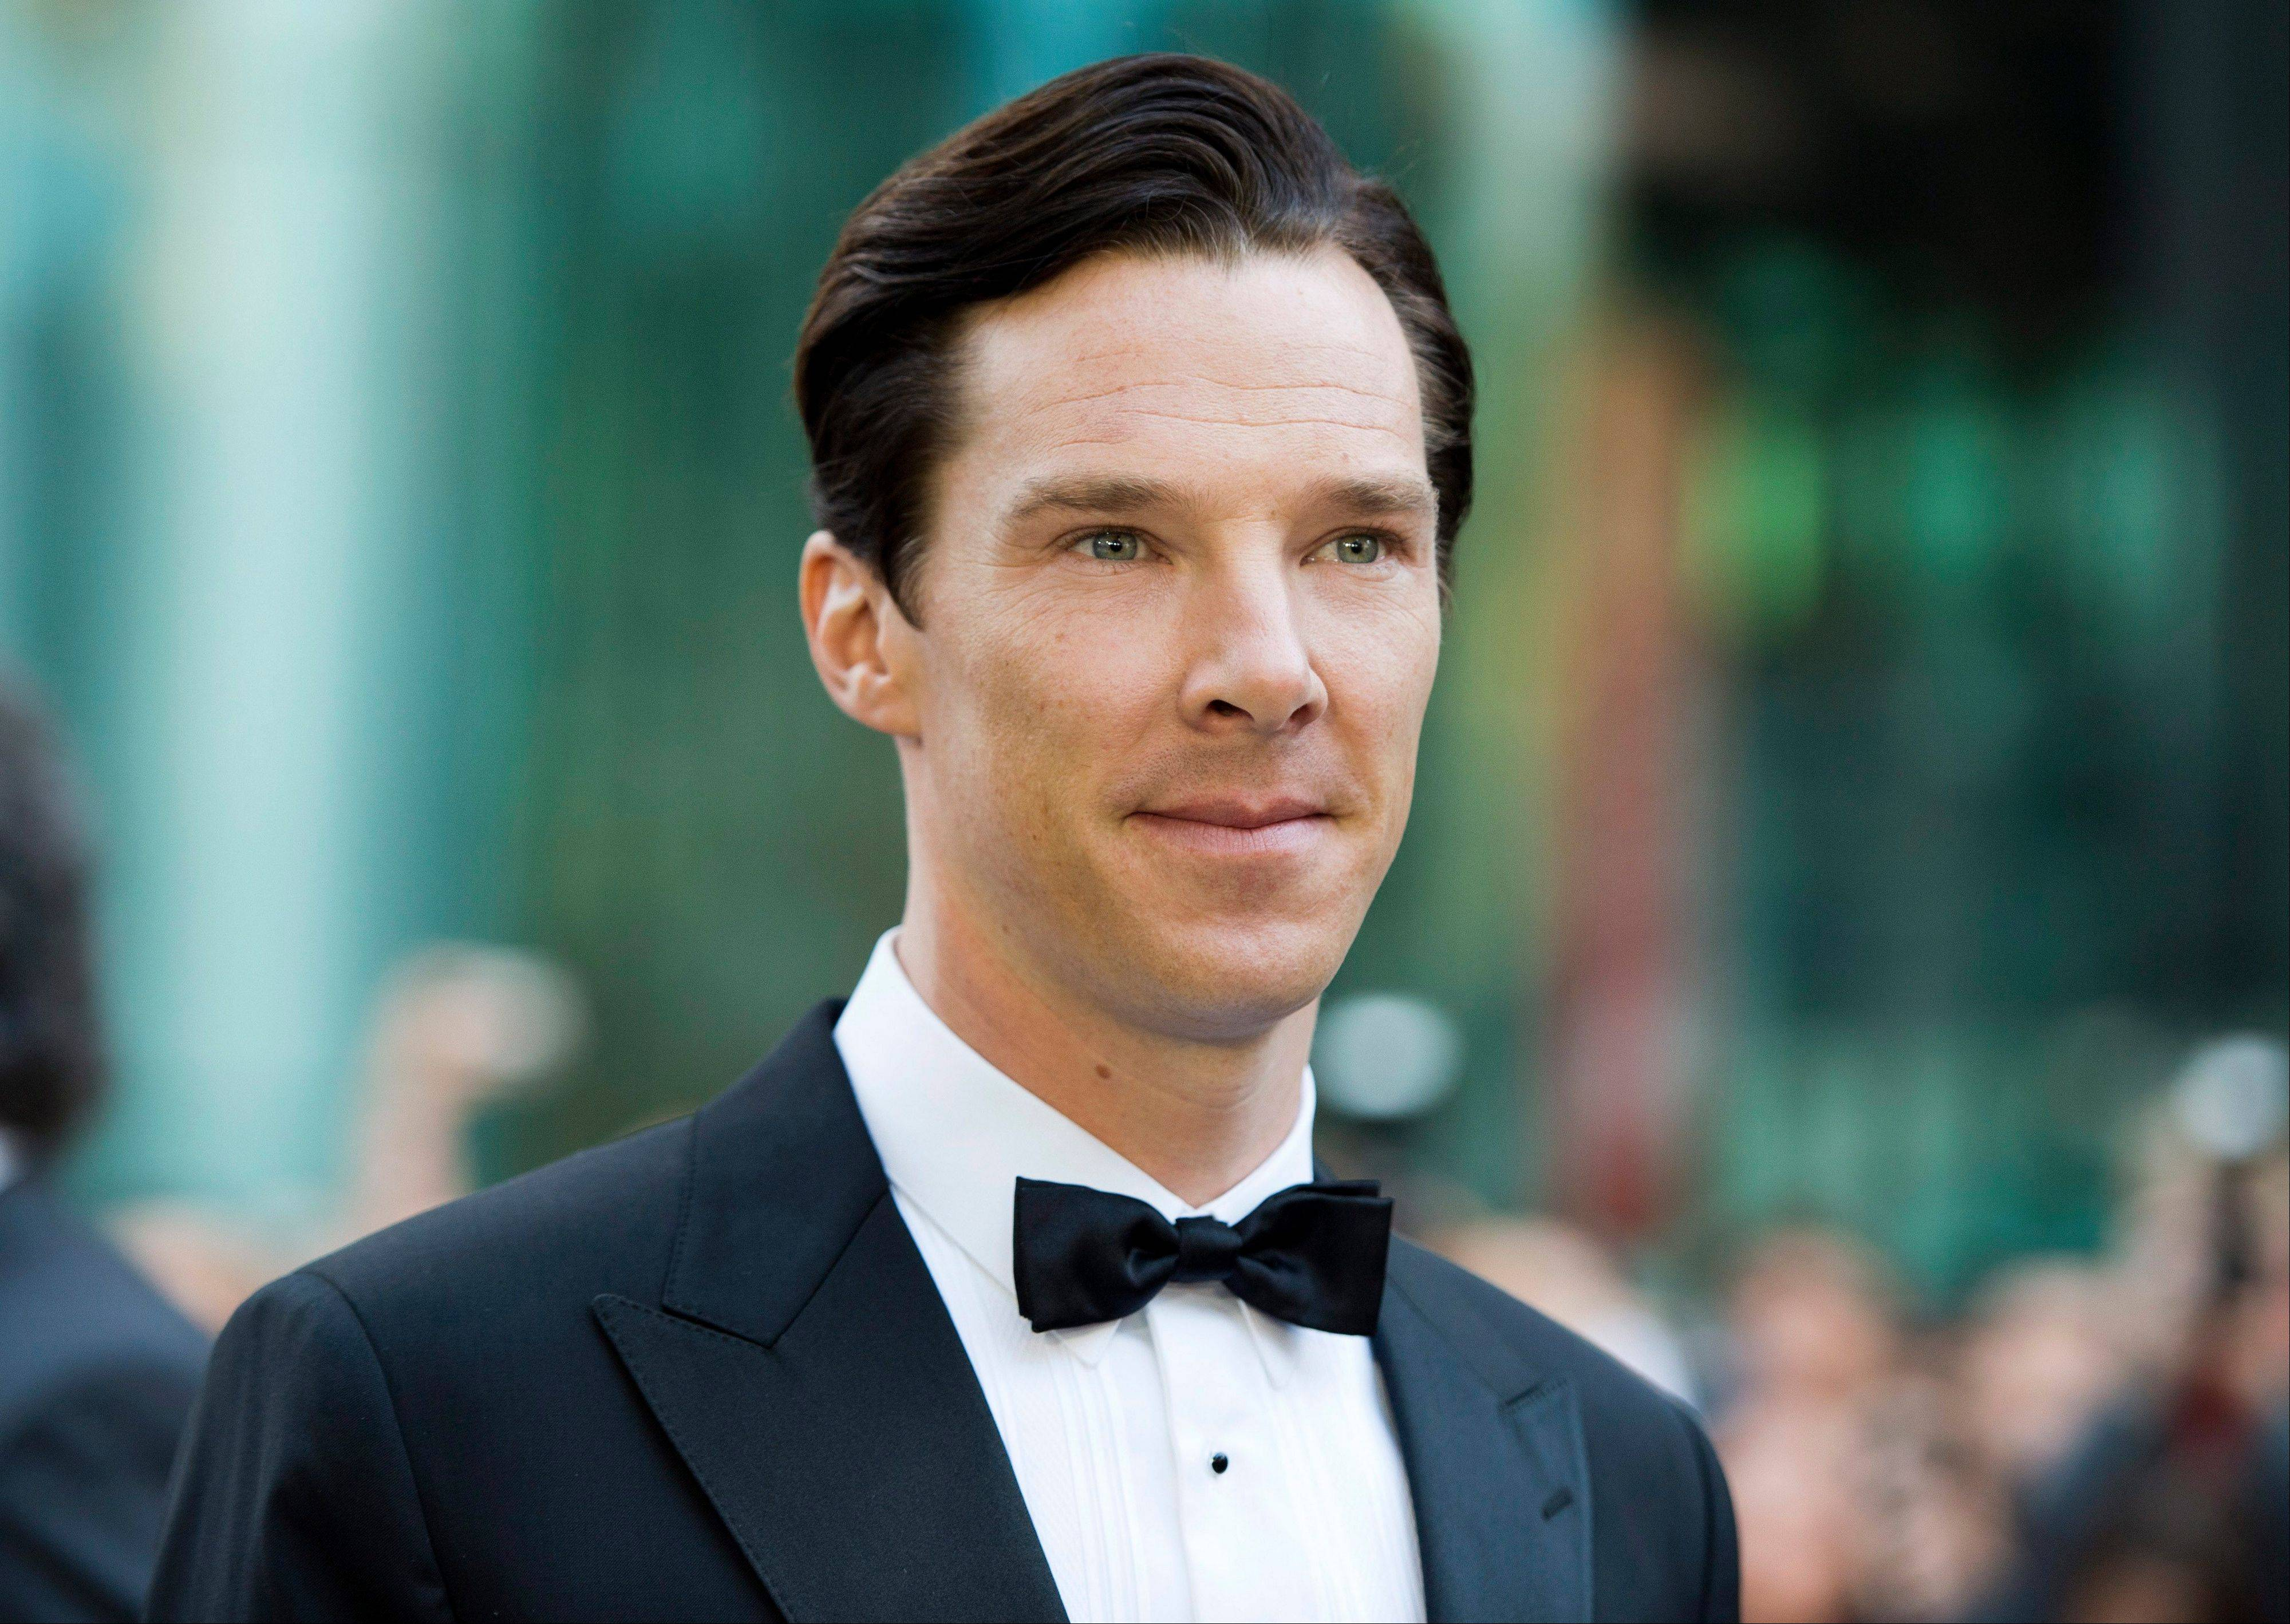 Benedict Cumberbatch's face was inescapable this year, but he was invisible in his best performance of 2013.